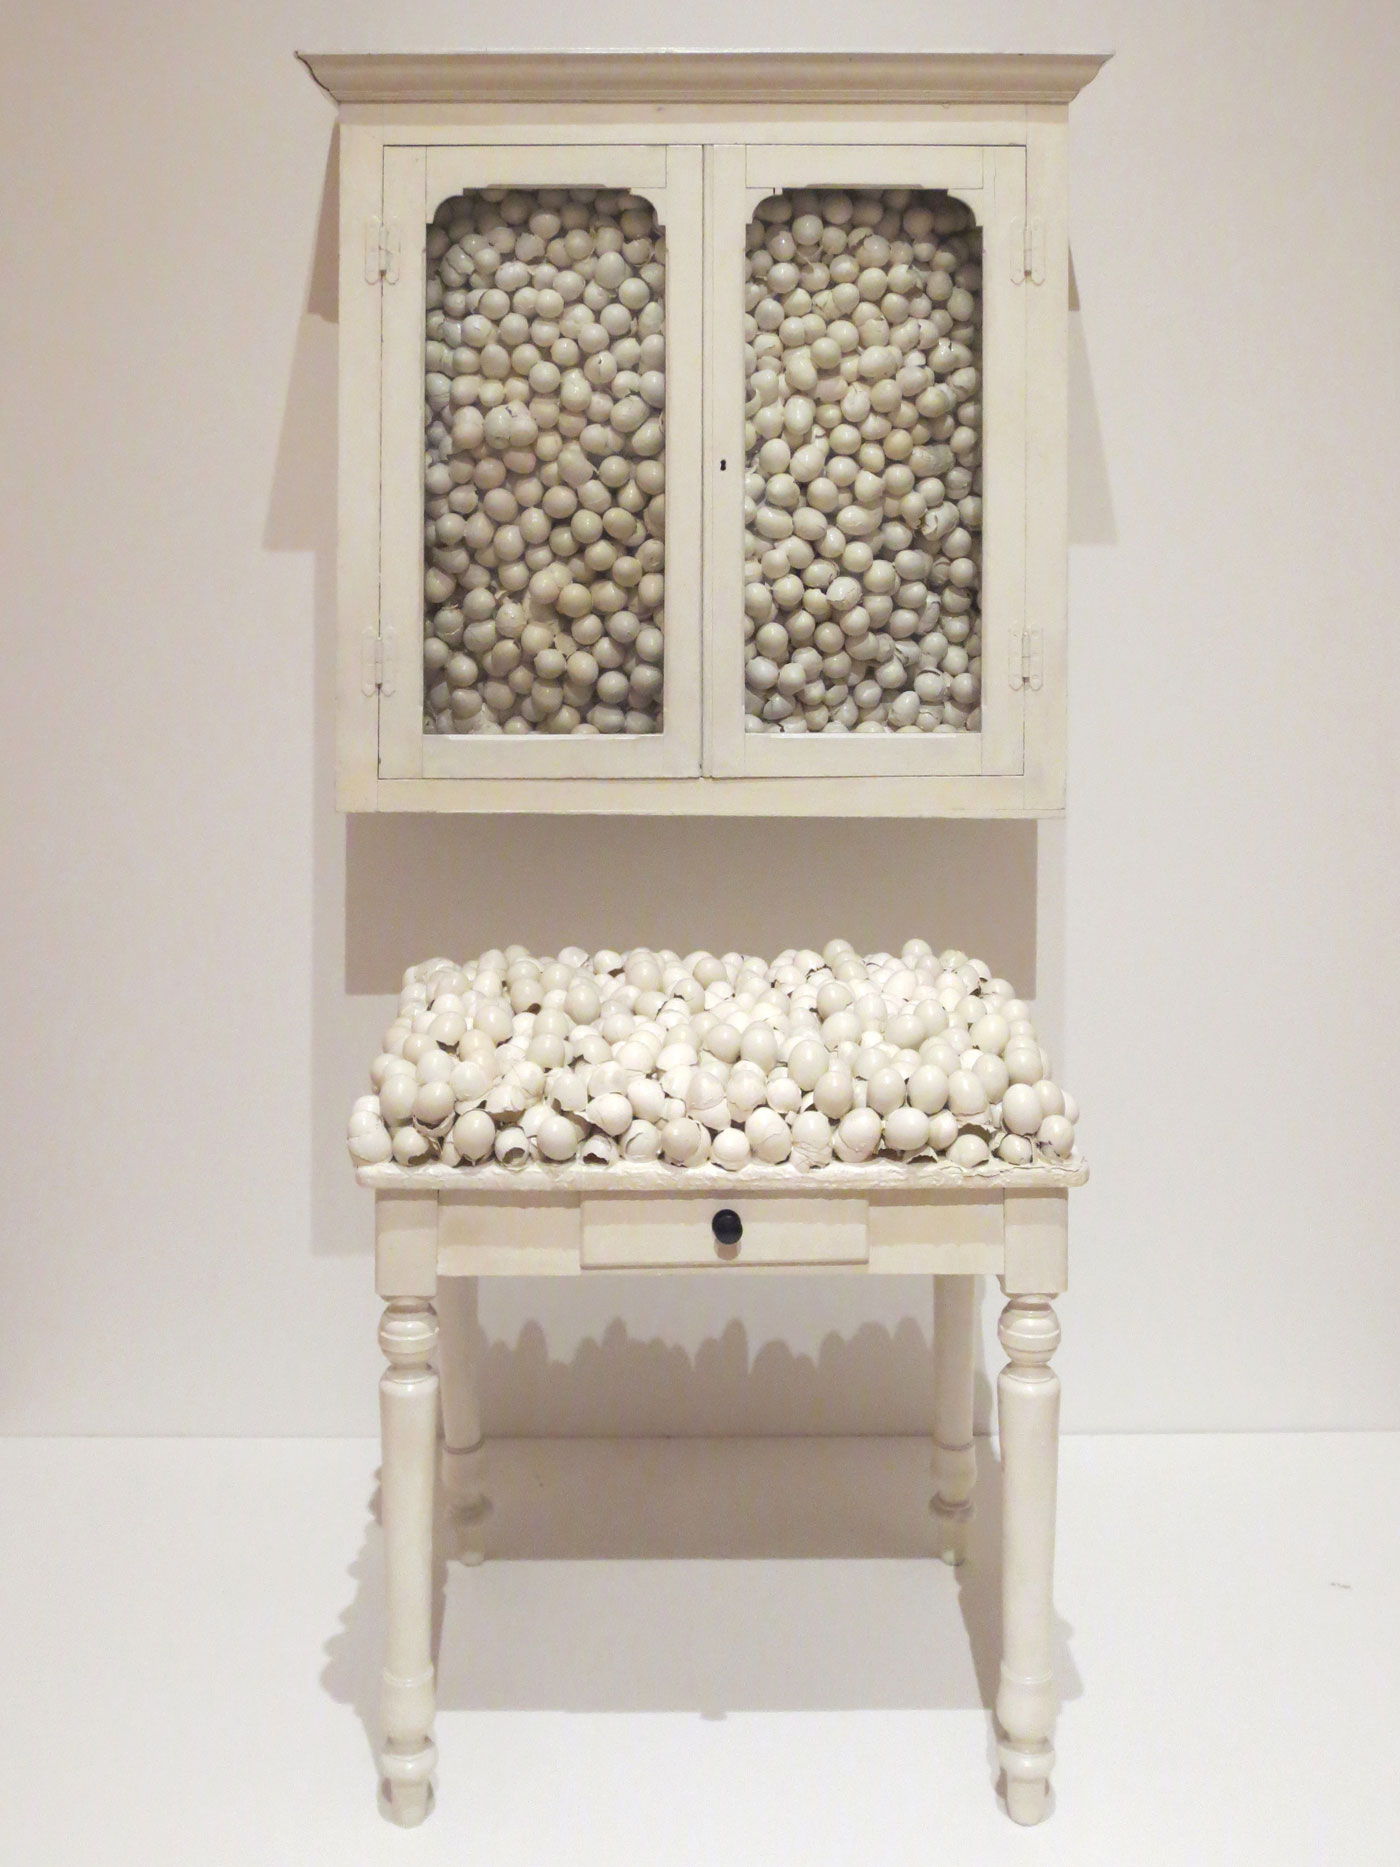 Marcel Broodthaers, White Cabinet and White Table